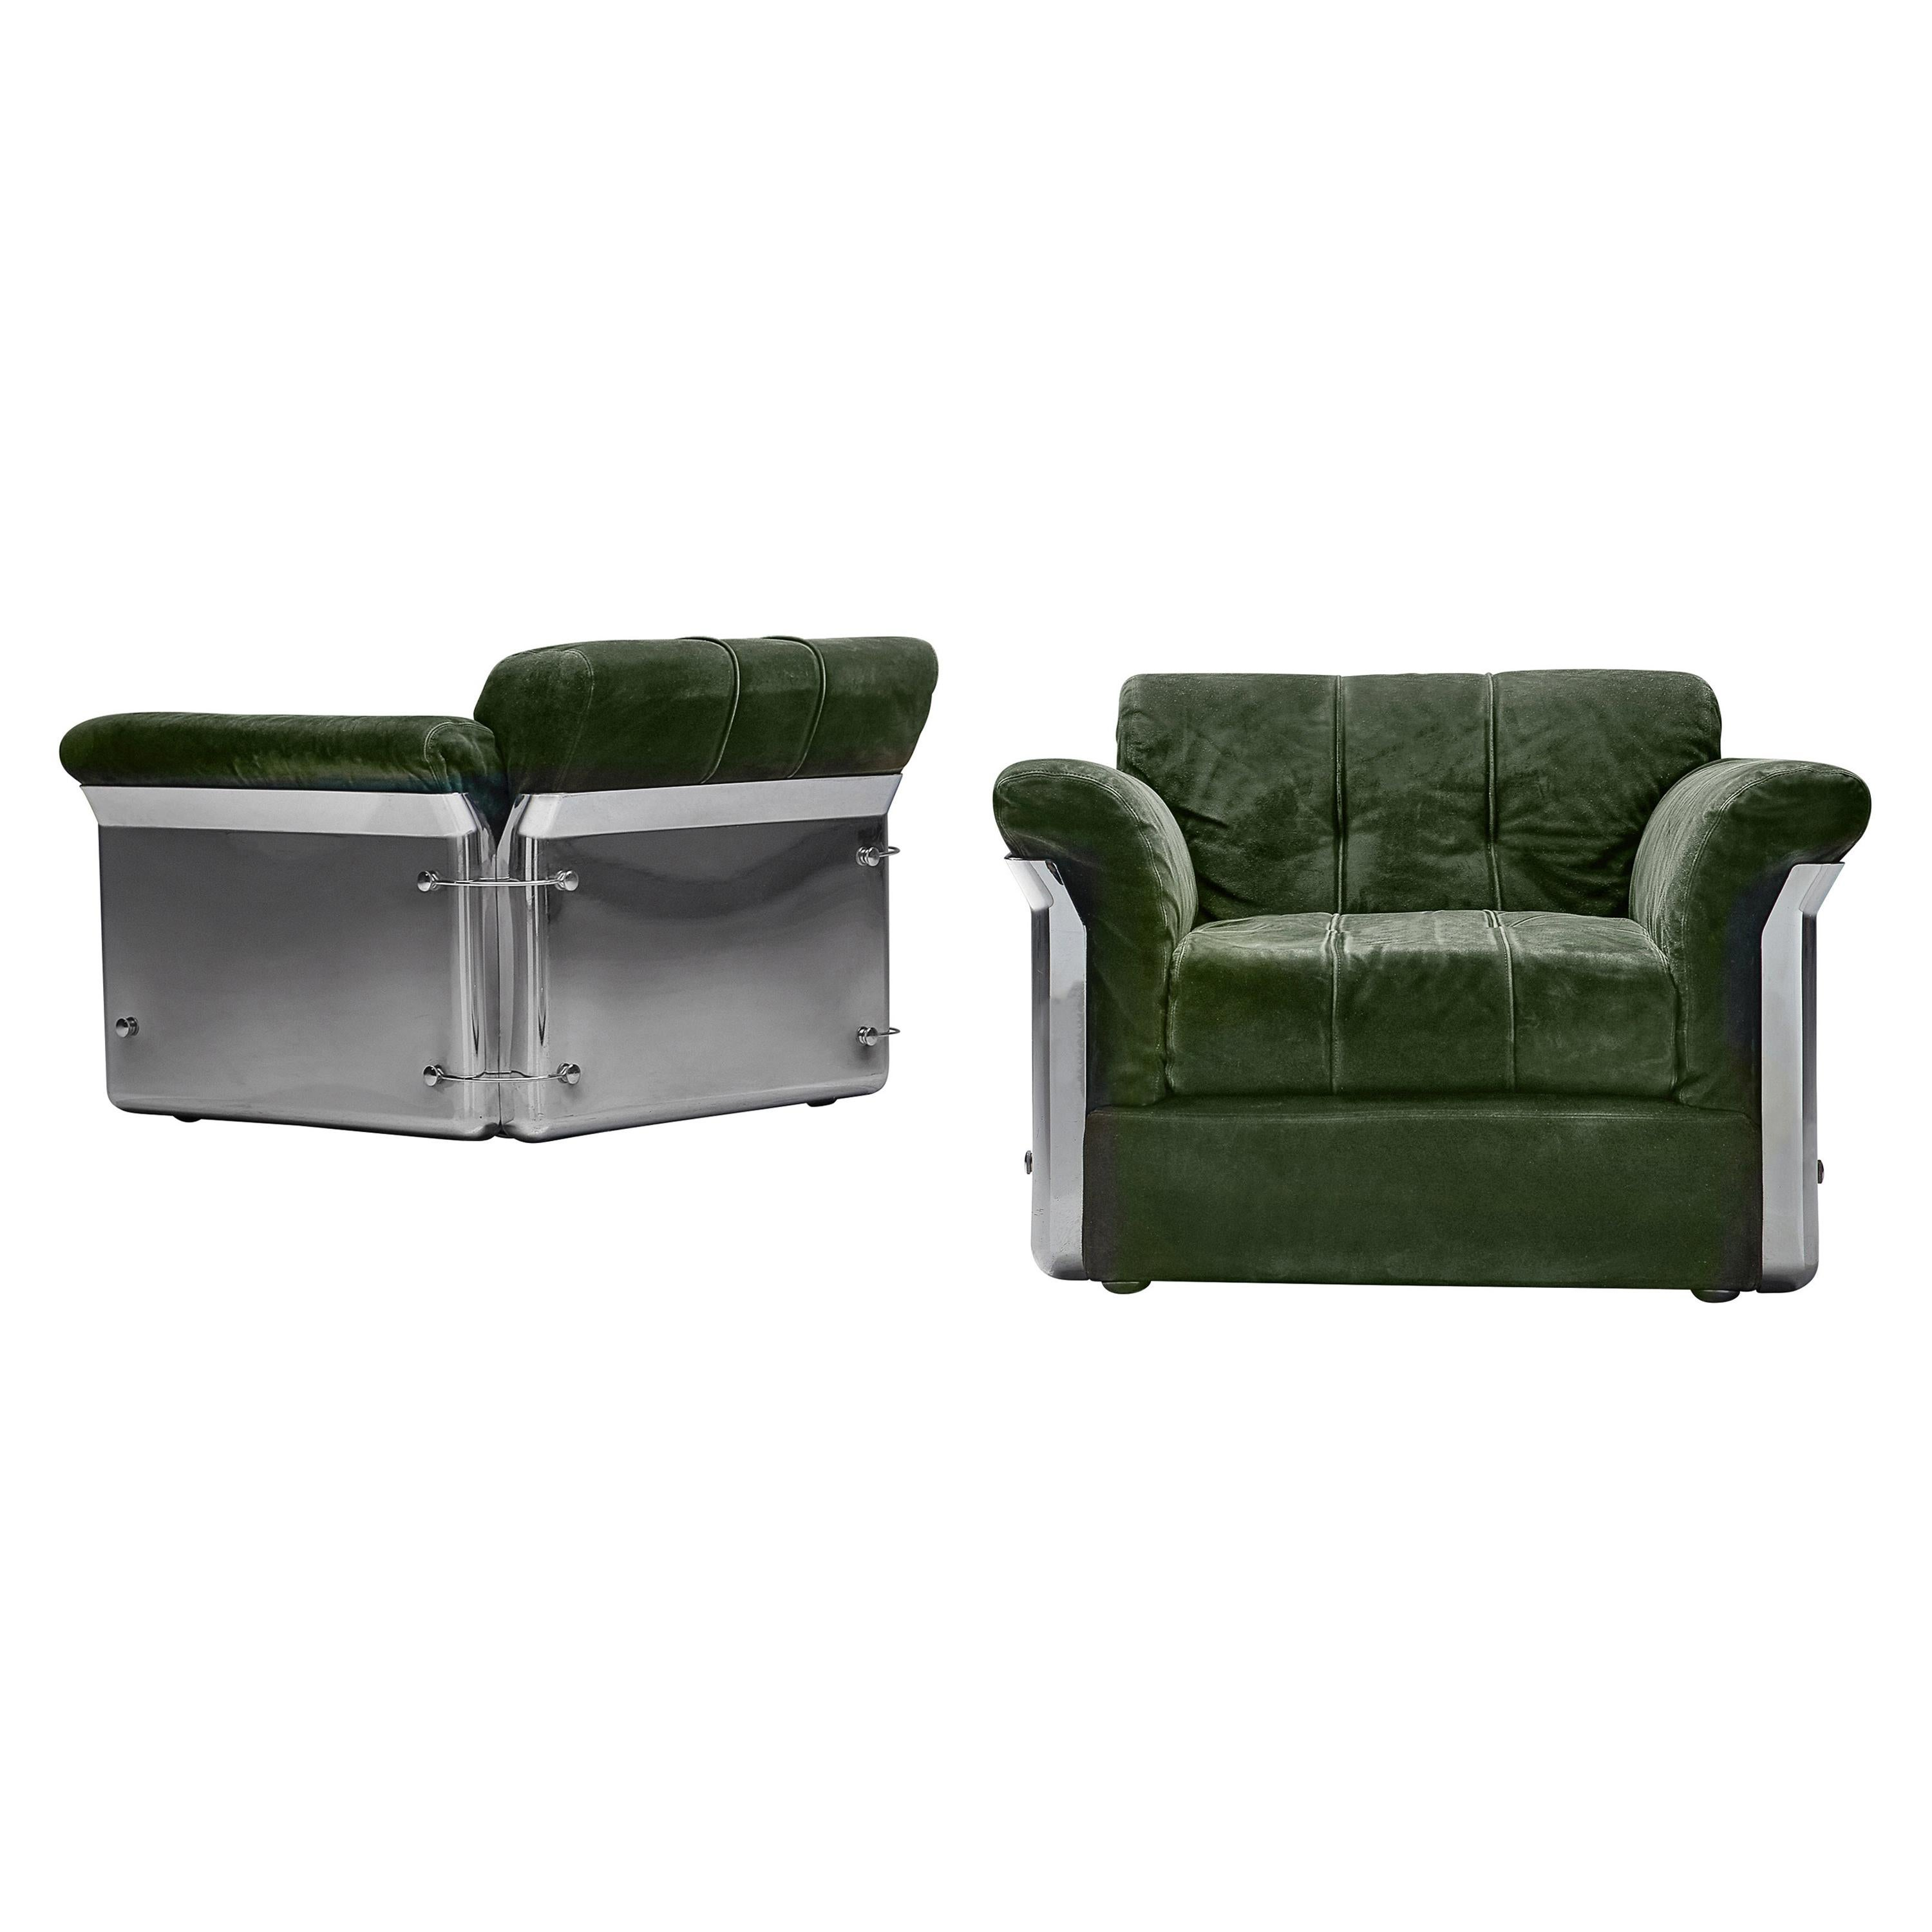 Vittorio Introini Pair of 'Larissa' Lounge Chairs in Green Leather